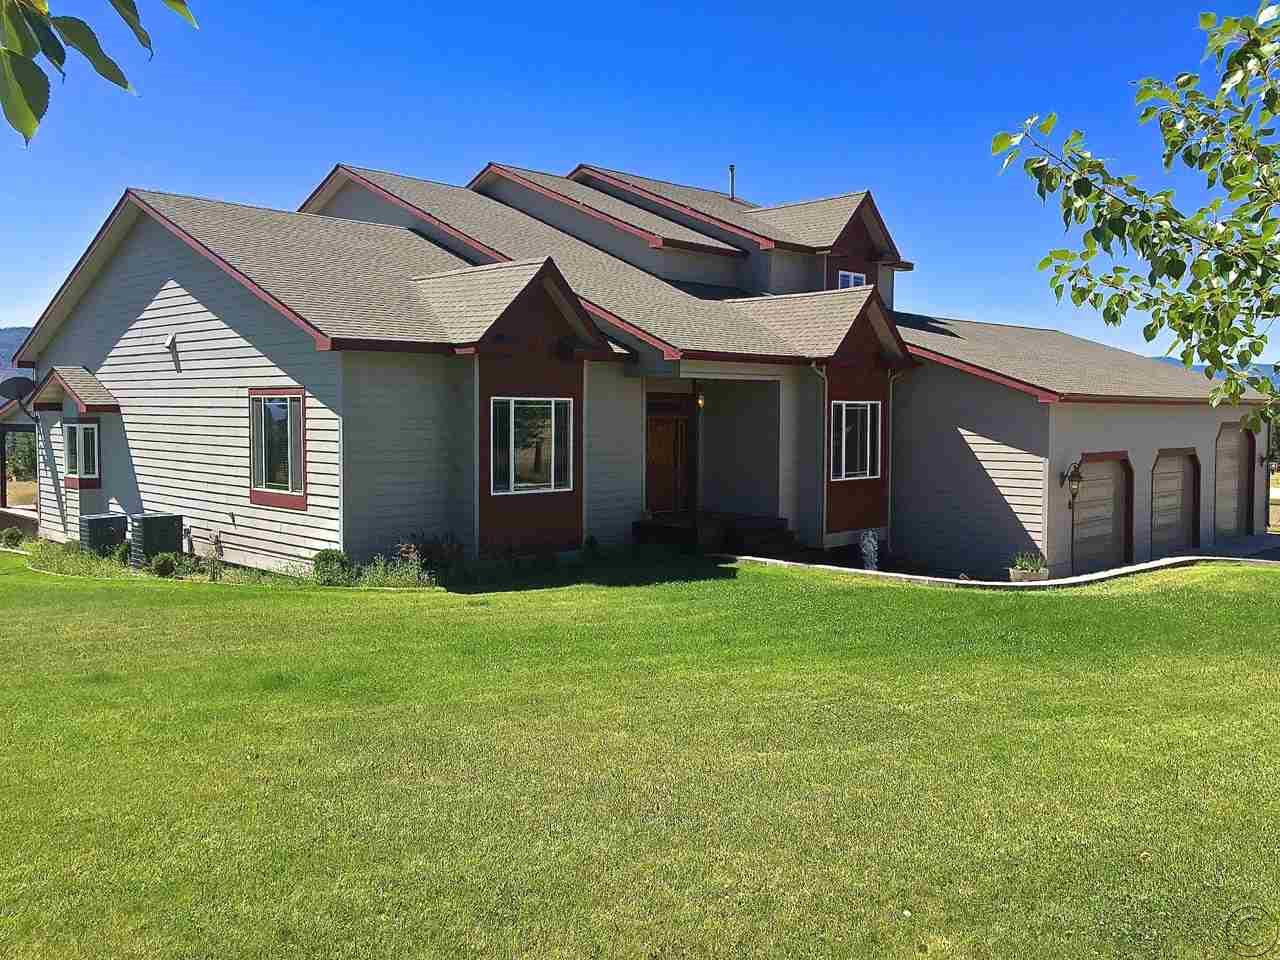 Real Estate for Sale, ListingId: 34726829, Frenchtown,MT59834